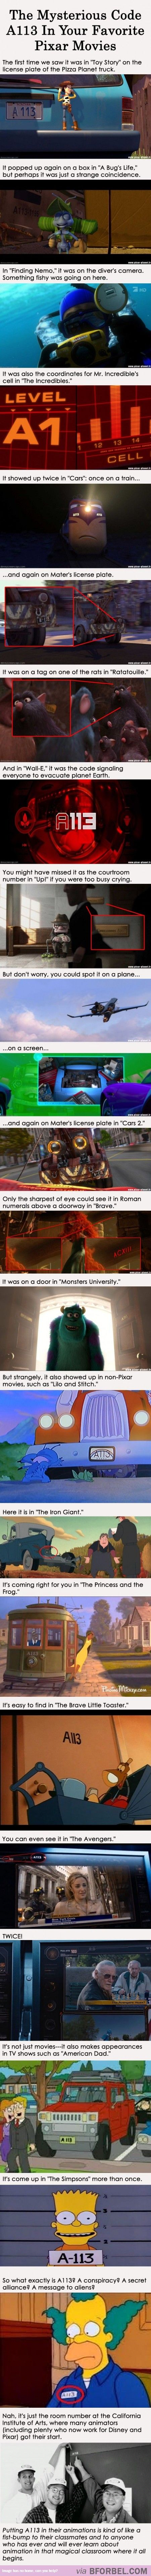 """The Mysterious A113 Code That Appeared In 22 Pixar Movies… As I was going down this entire pin the whole time I was just thinking """"I'm never gonna figure this out this is gonna be a mystery forever"""" but..."""